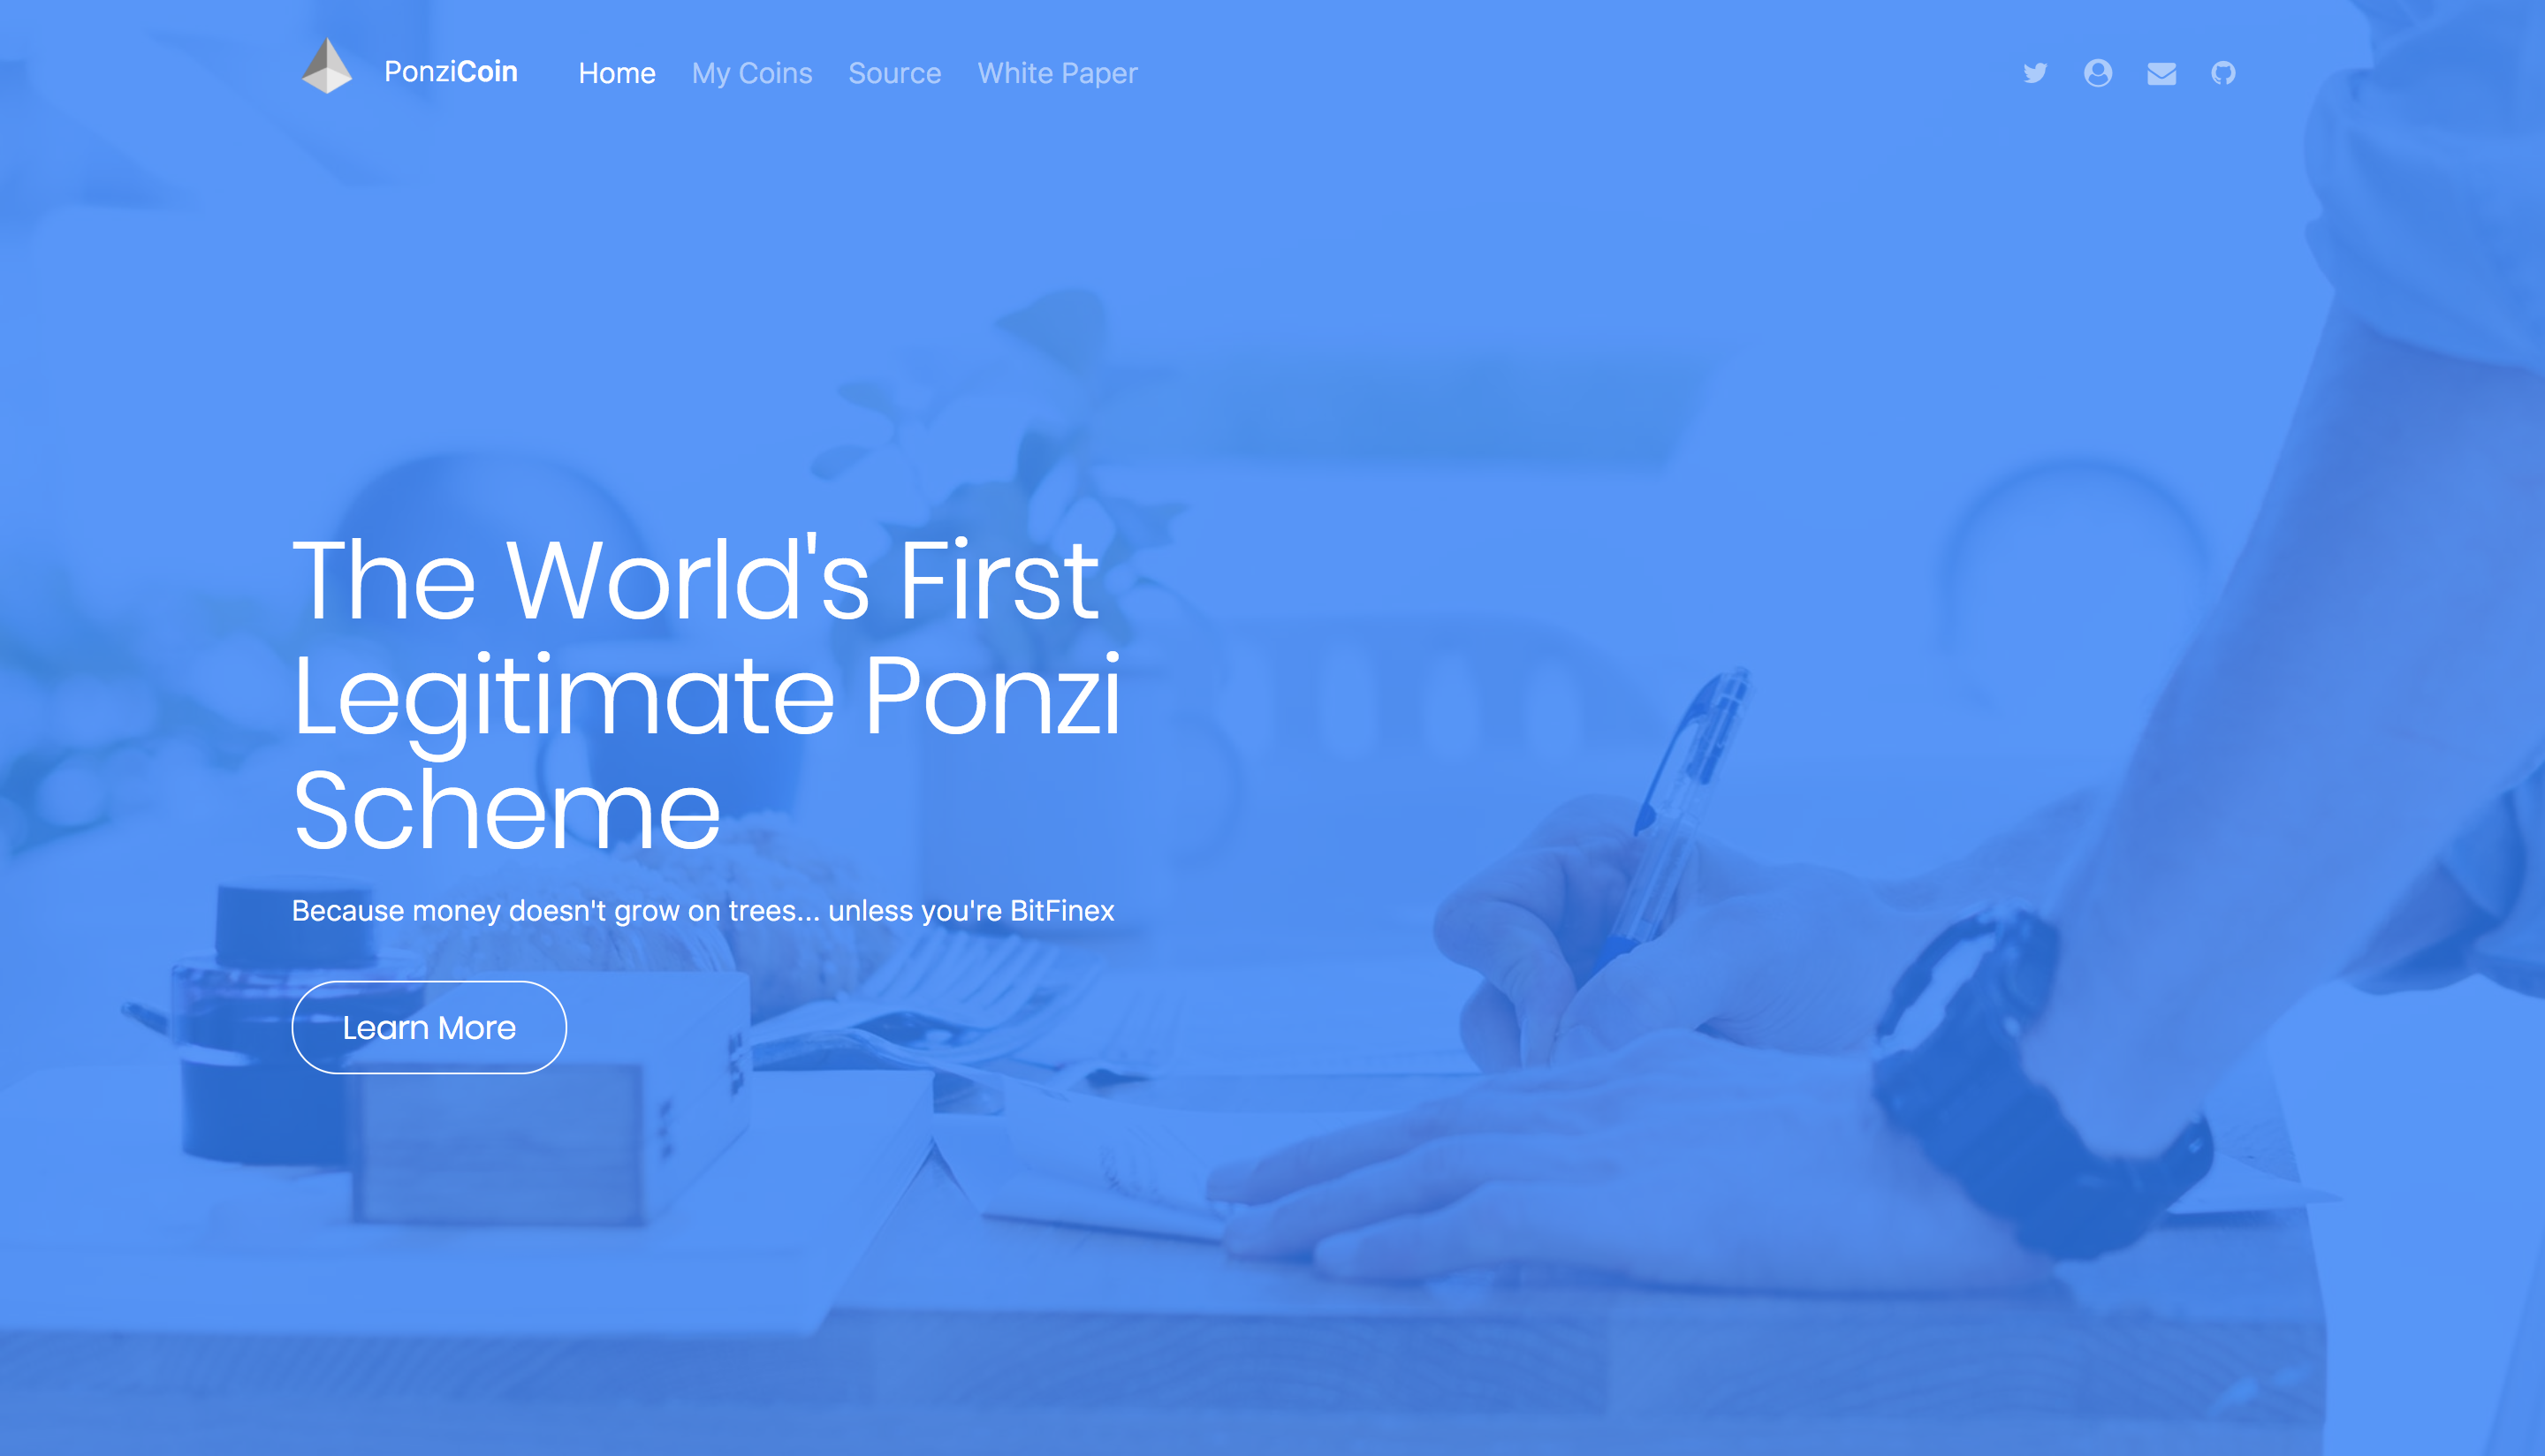 ponzi coin website